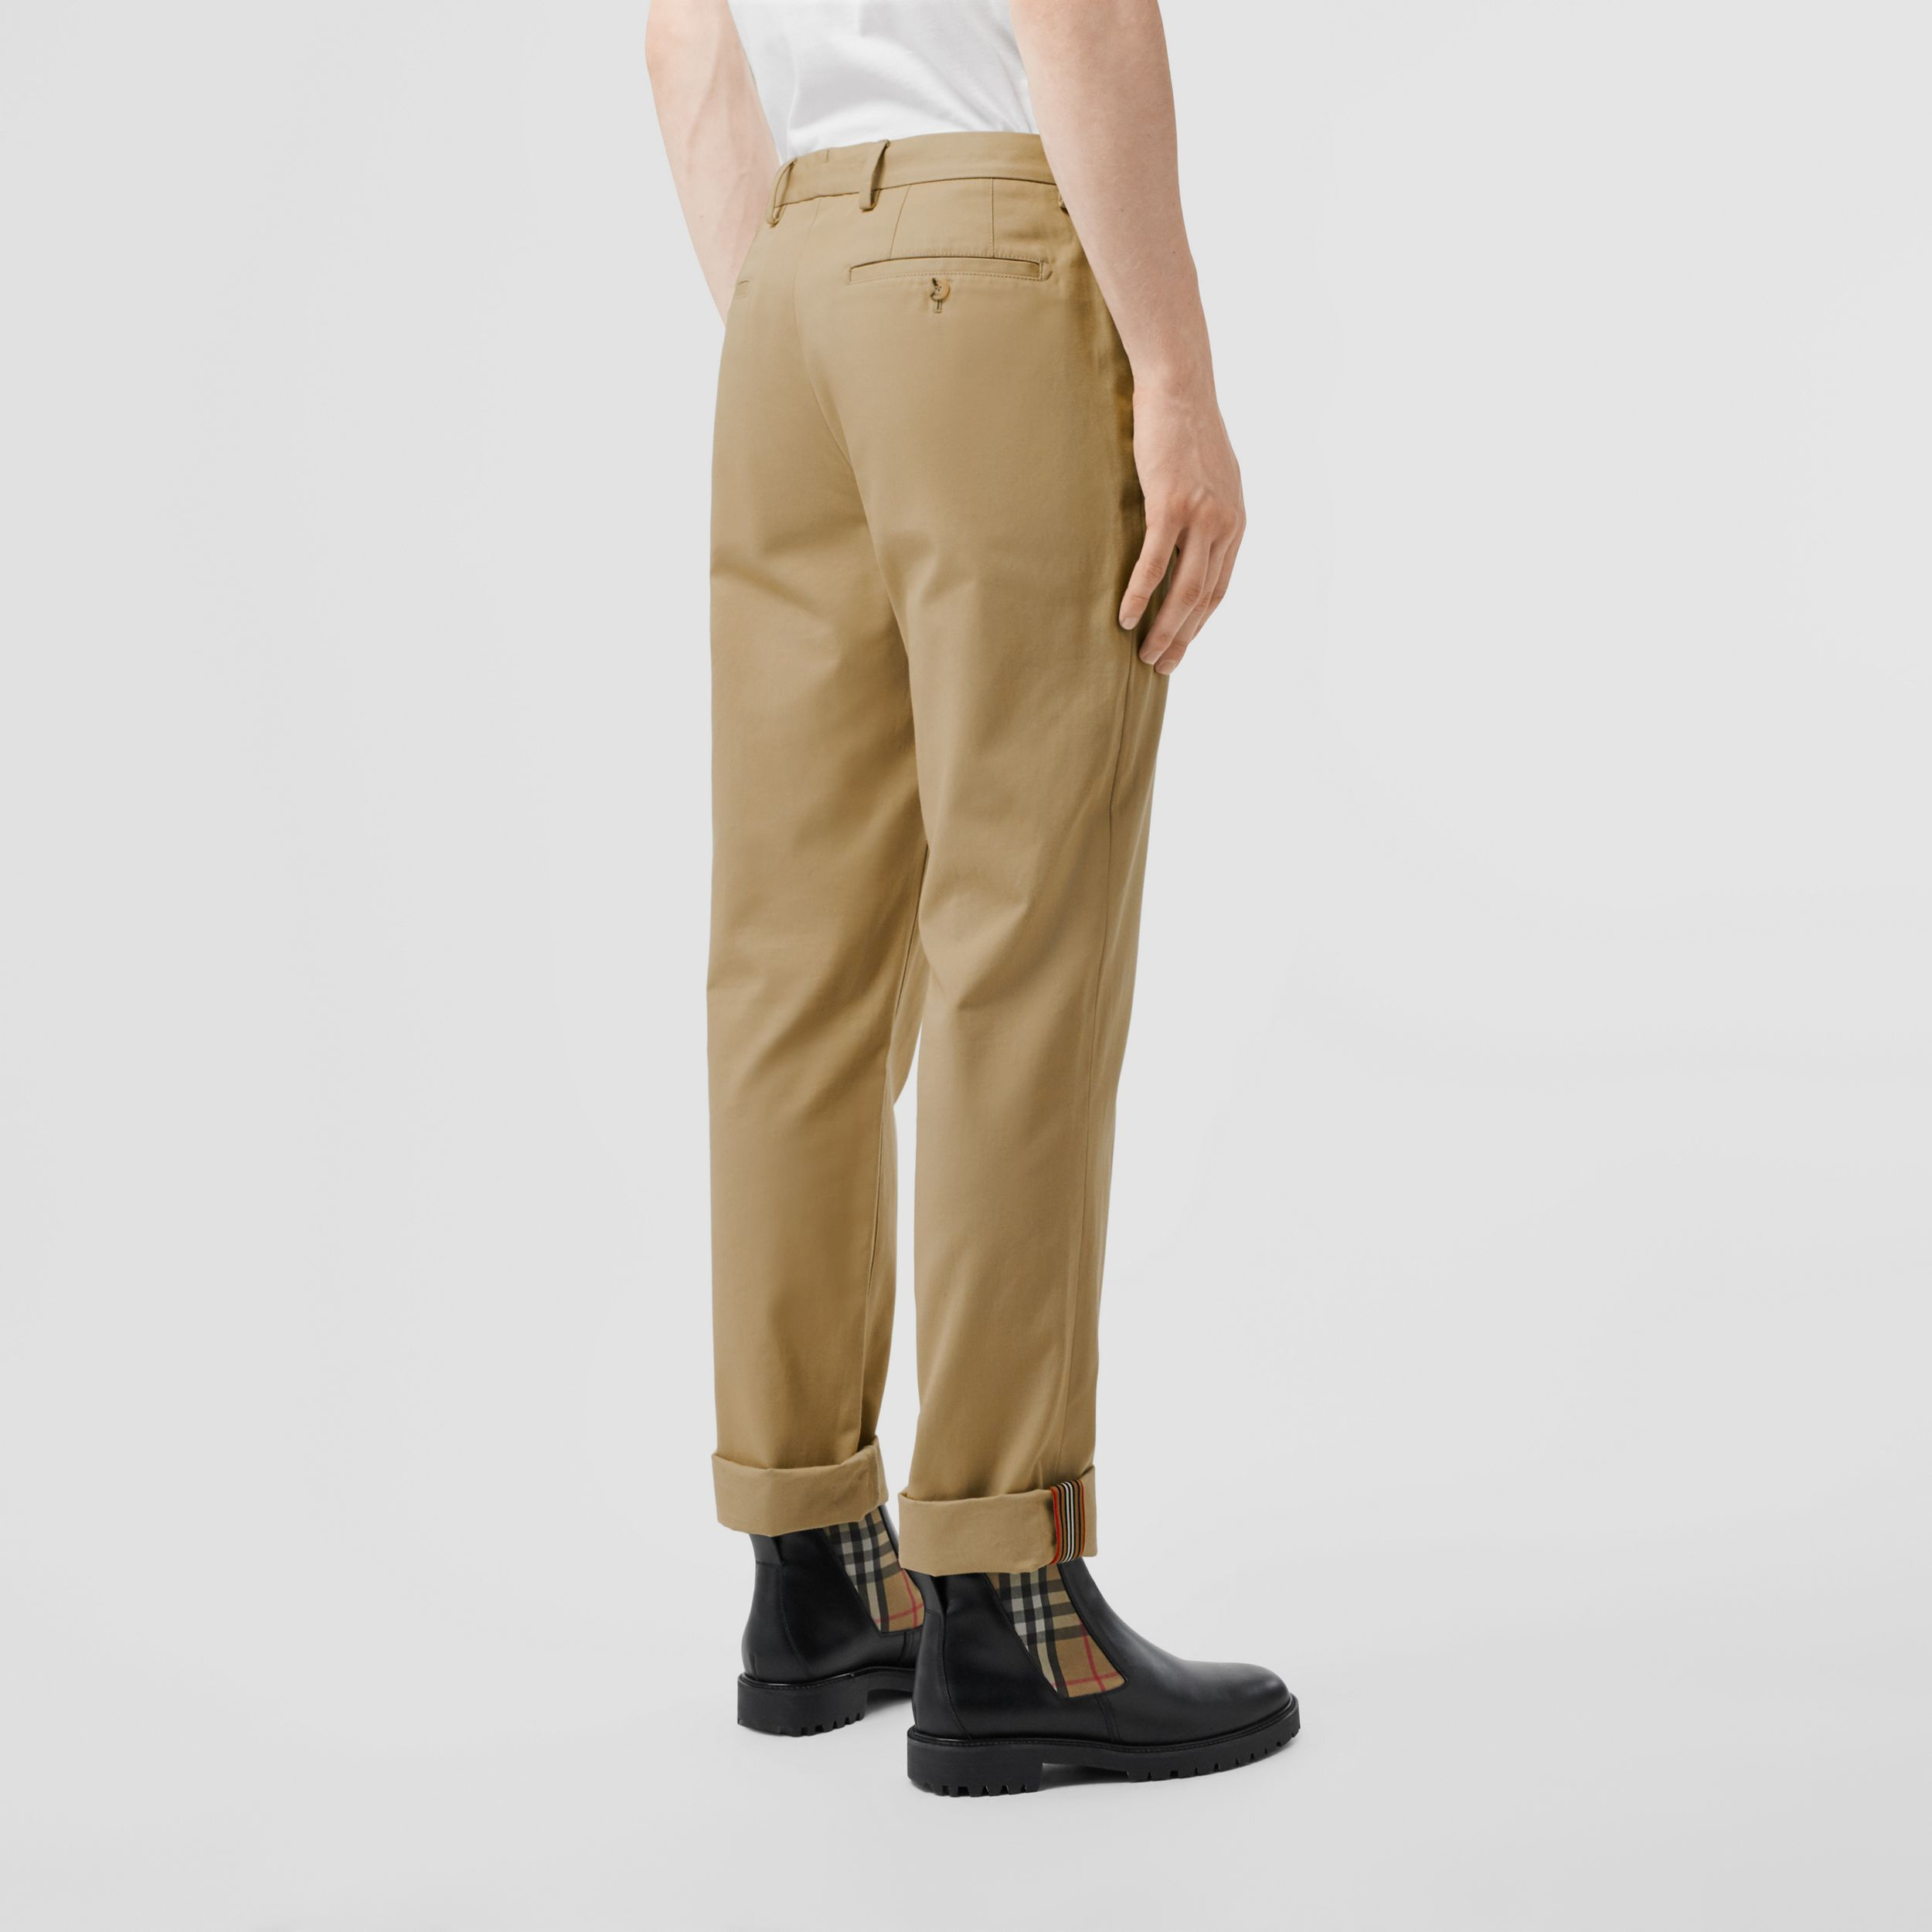 Slim Fit Cotton Chinos in Honey - Men | Burberry Canada - 3